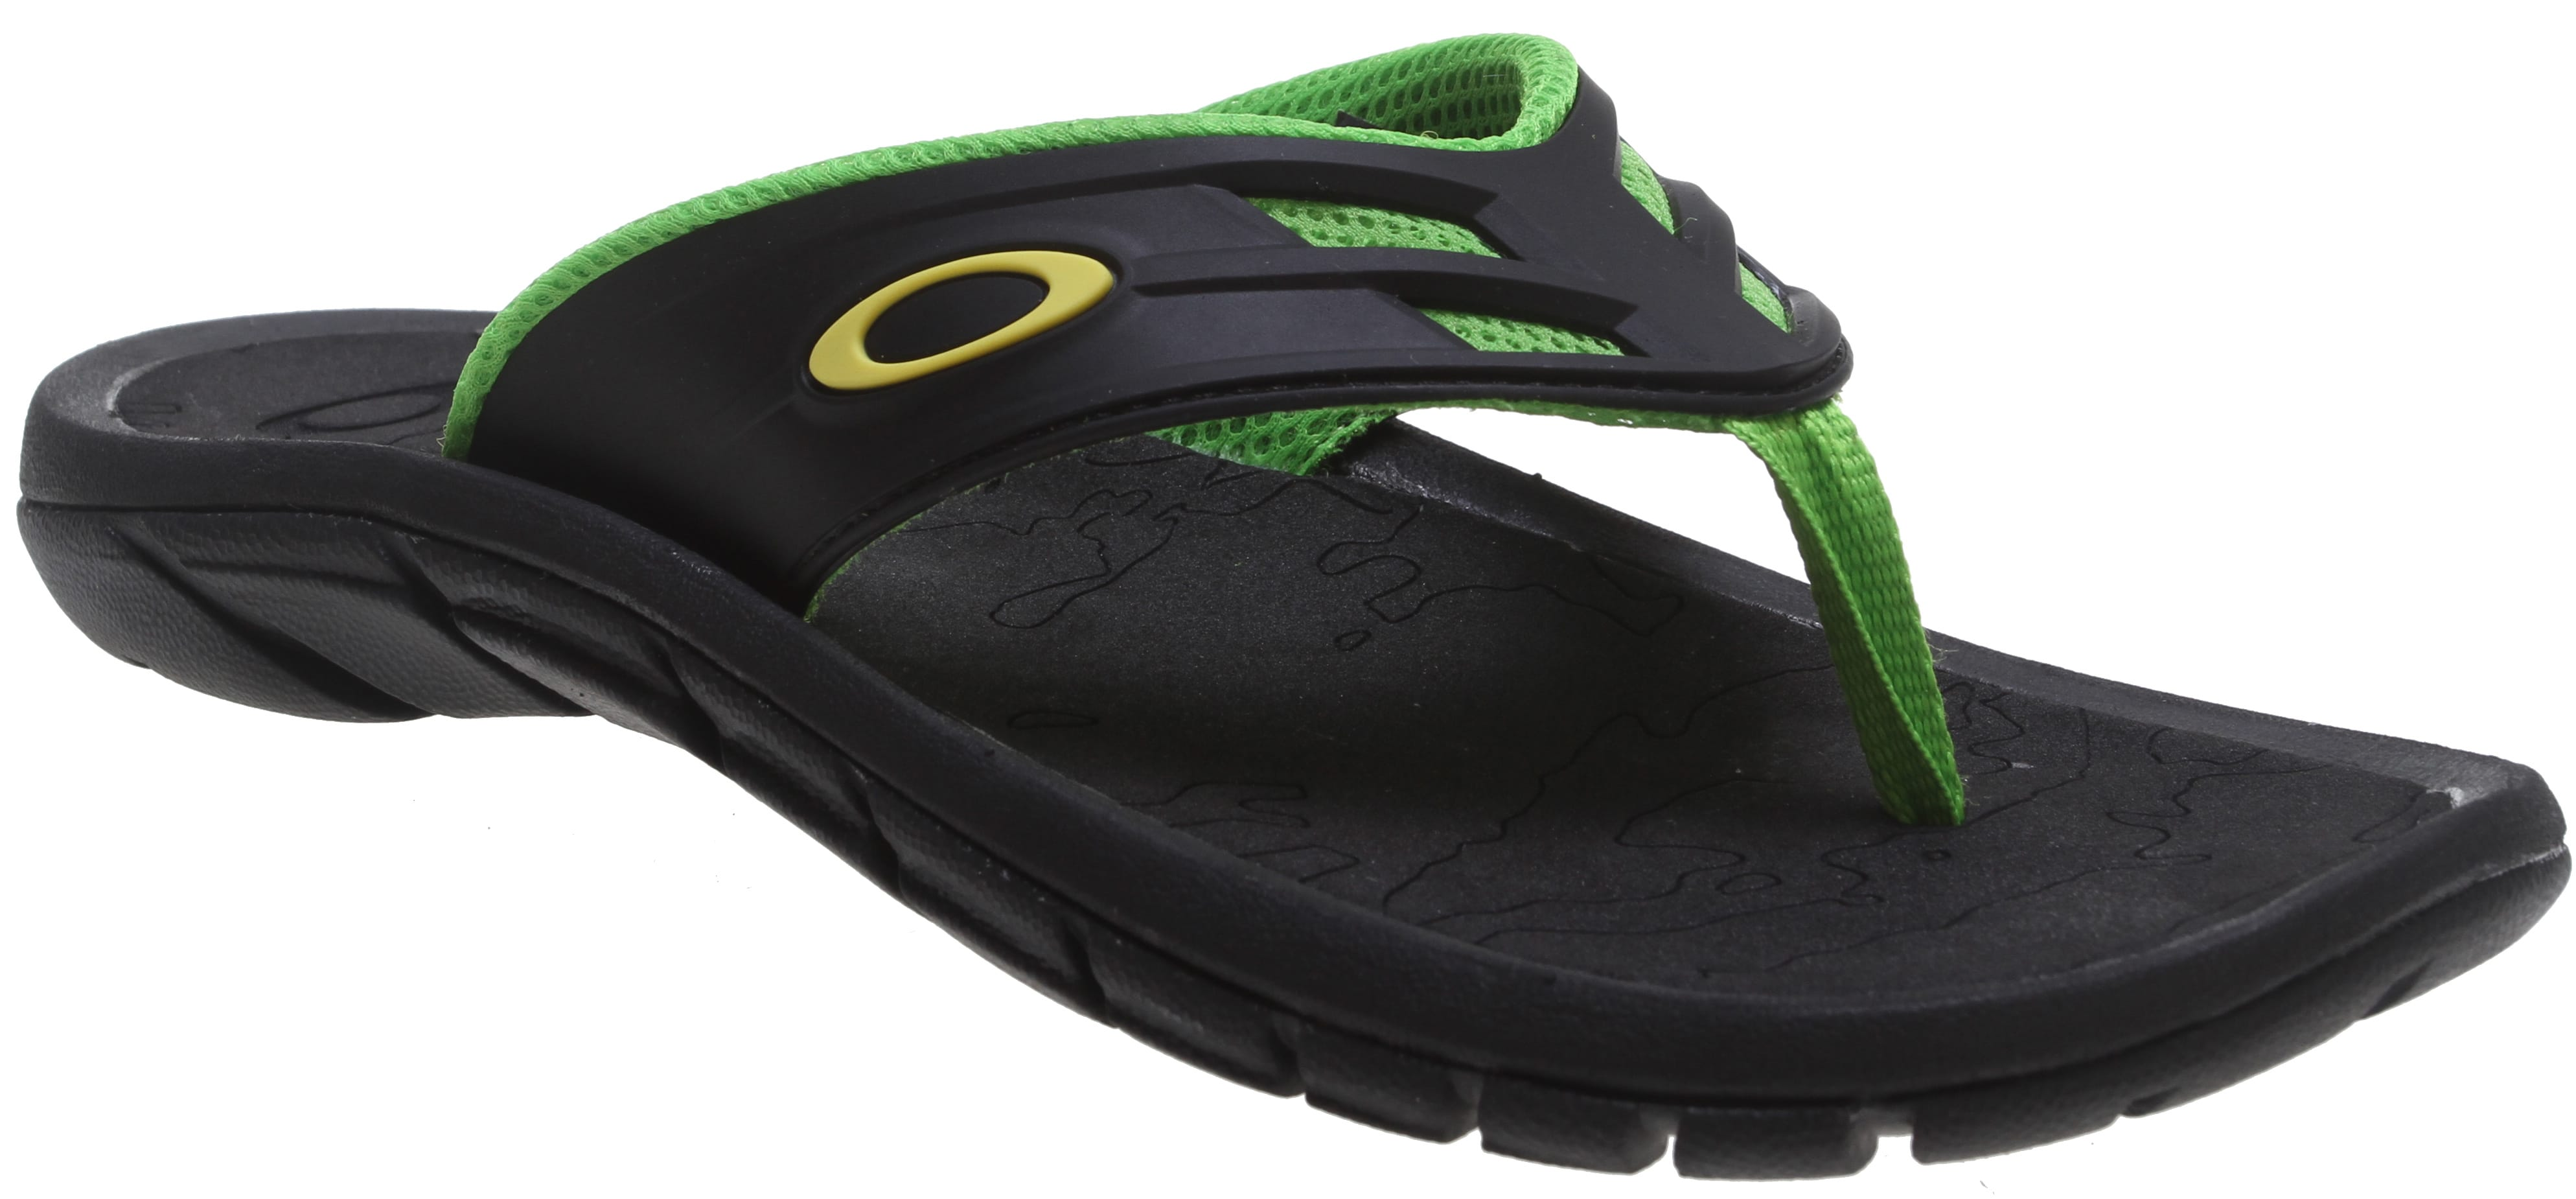 Oakley Supercoil Sandals Review Cepar